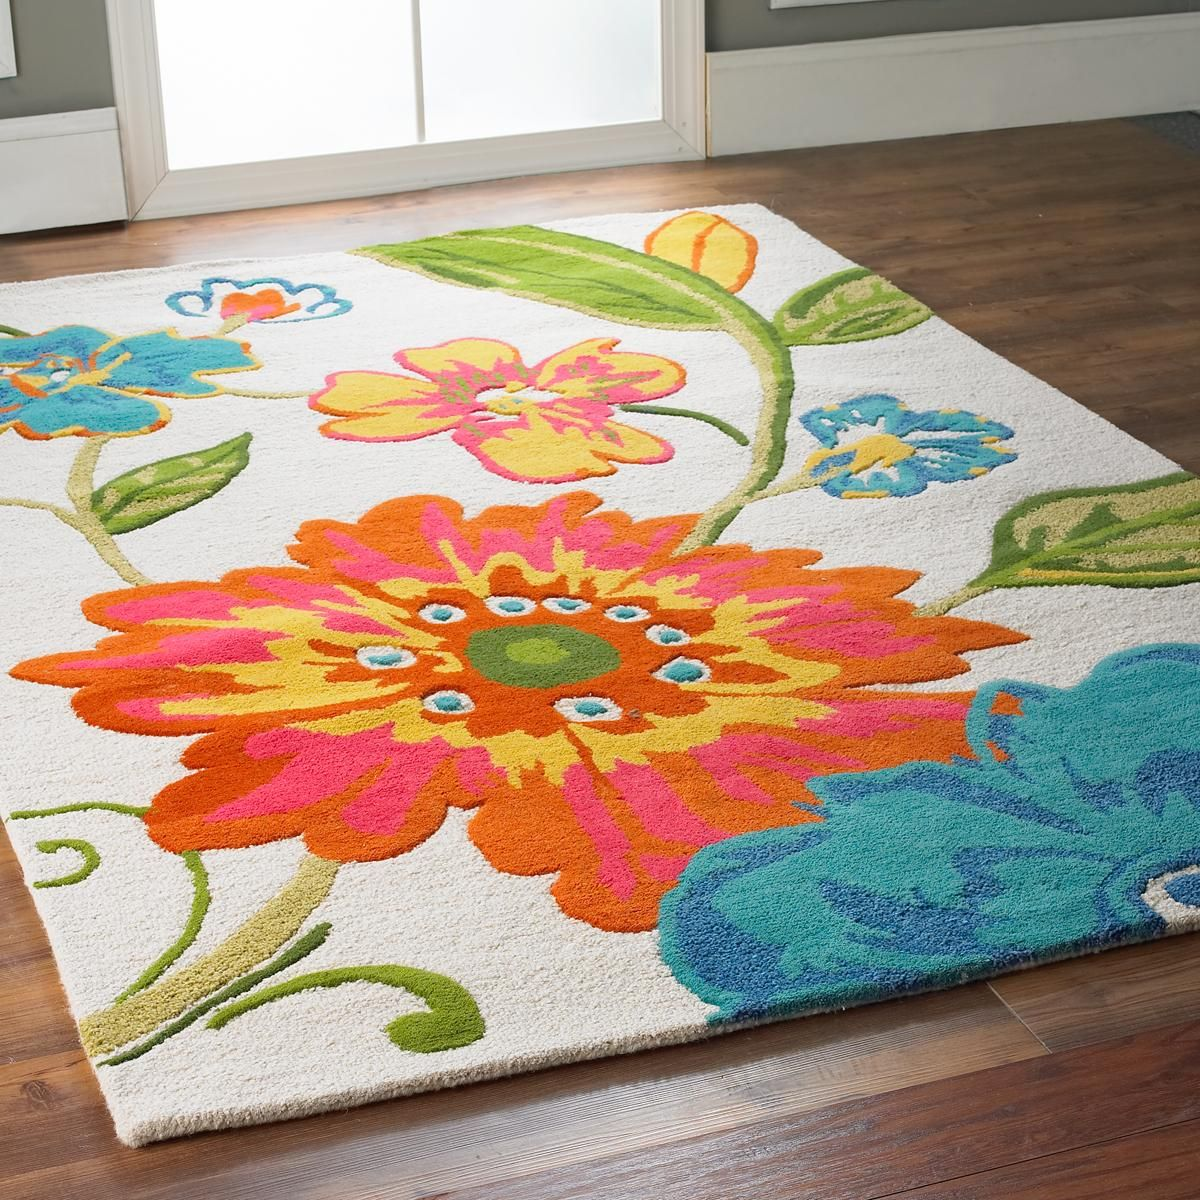 Pink Turquoise Girly Chic Floral Paisley Pattern Rug By: Living Color Floral Stem On Ivory Rug